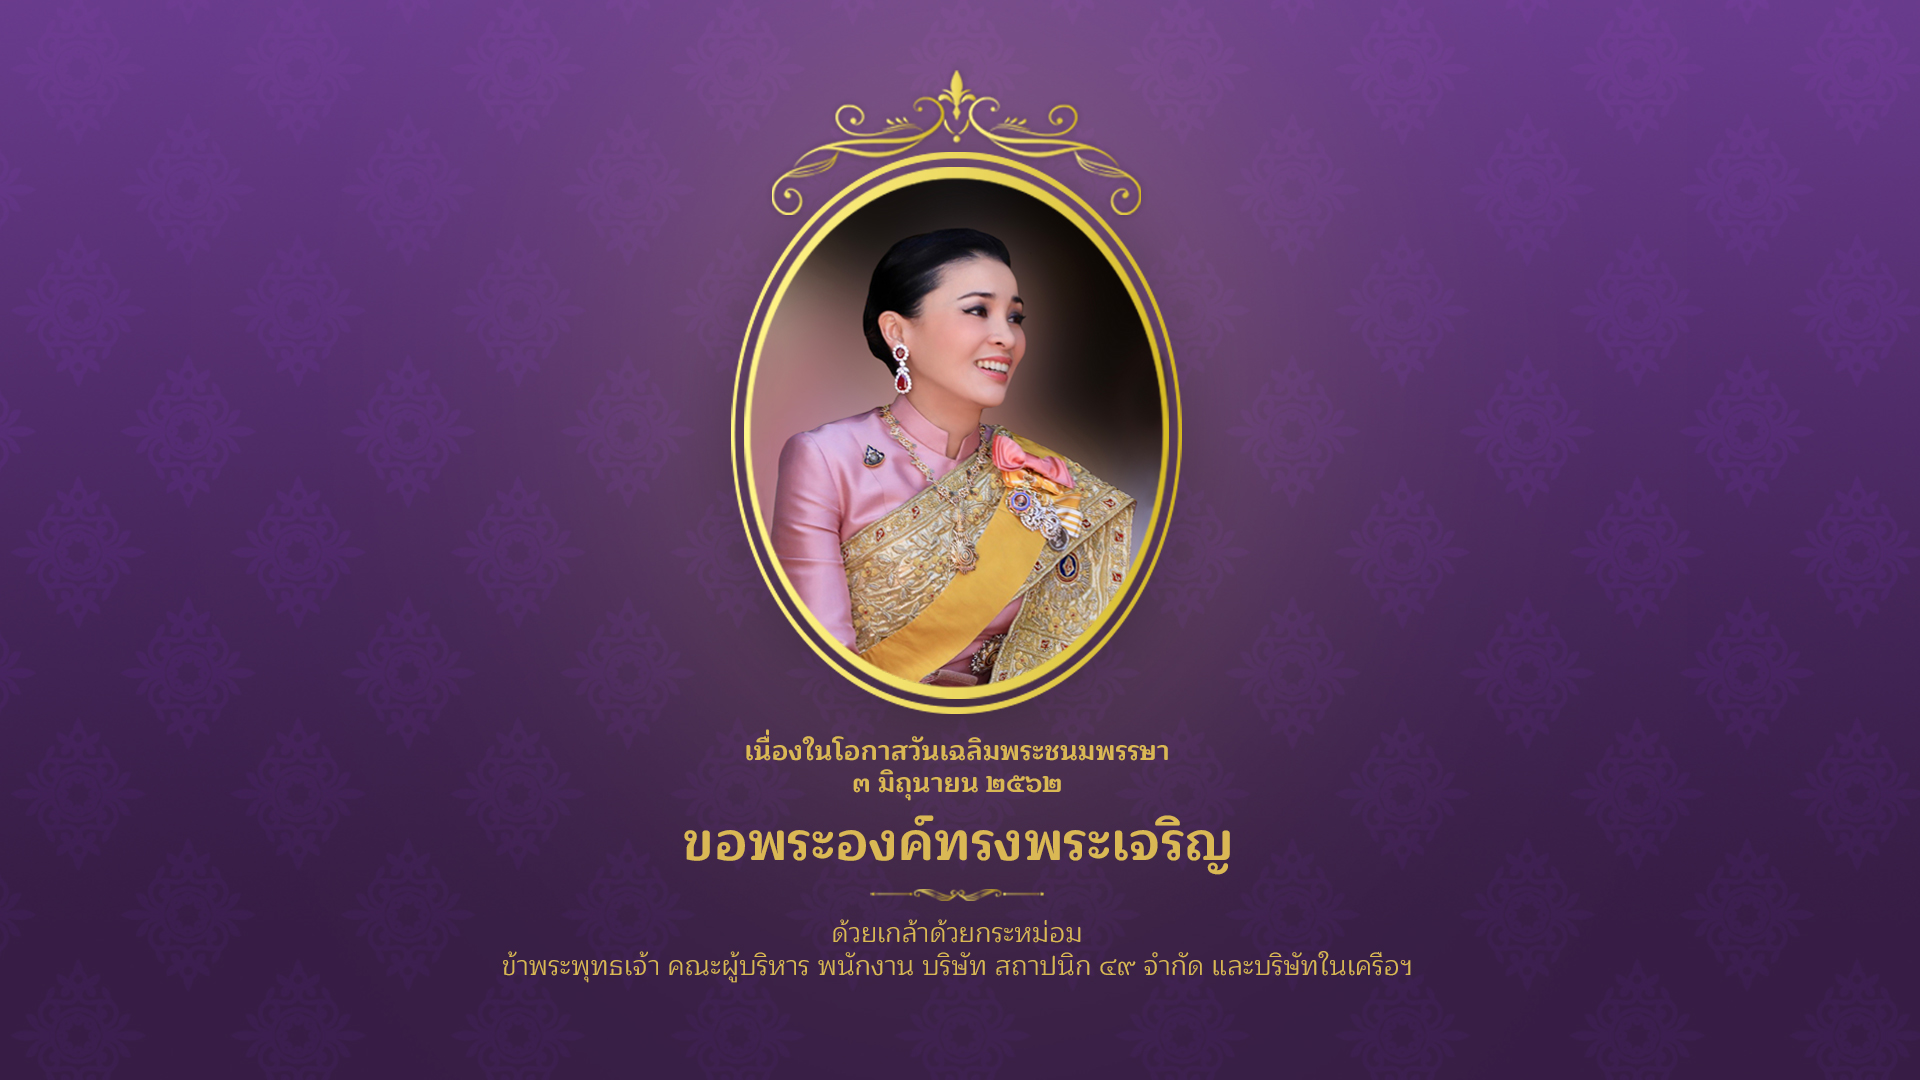 Her Majesty the Queen Suthida's Aniversary 2019